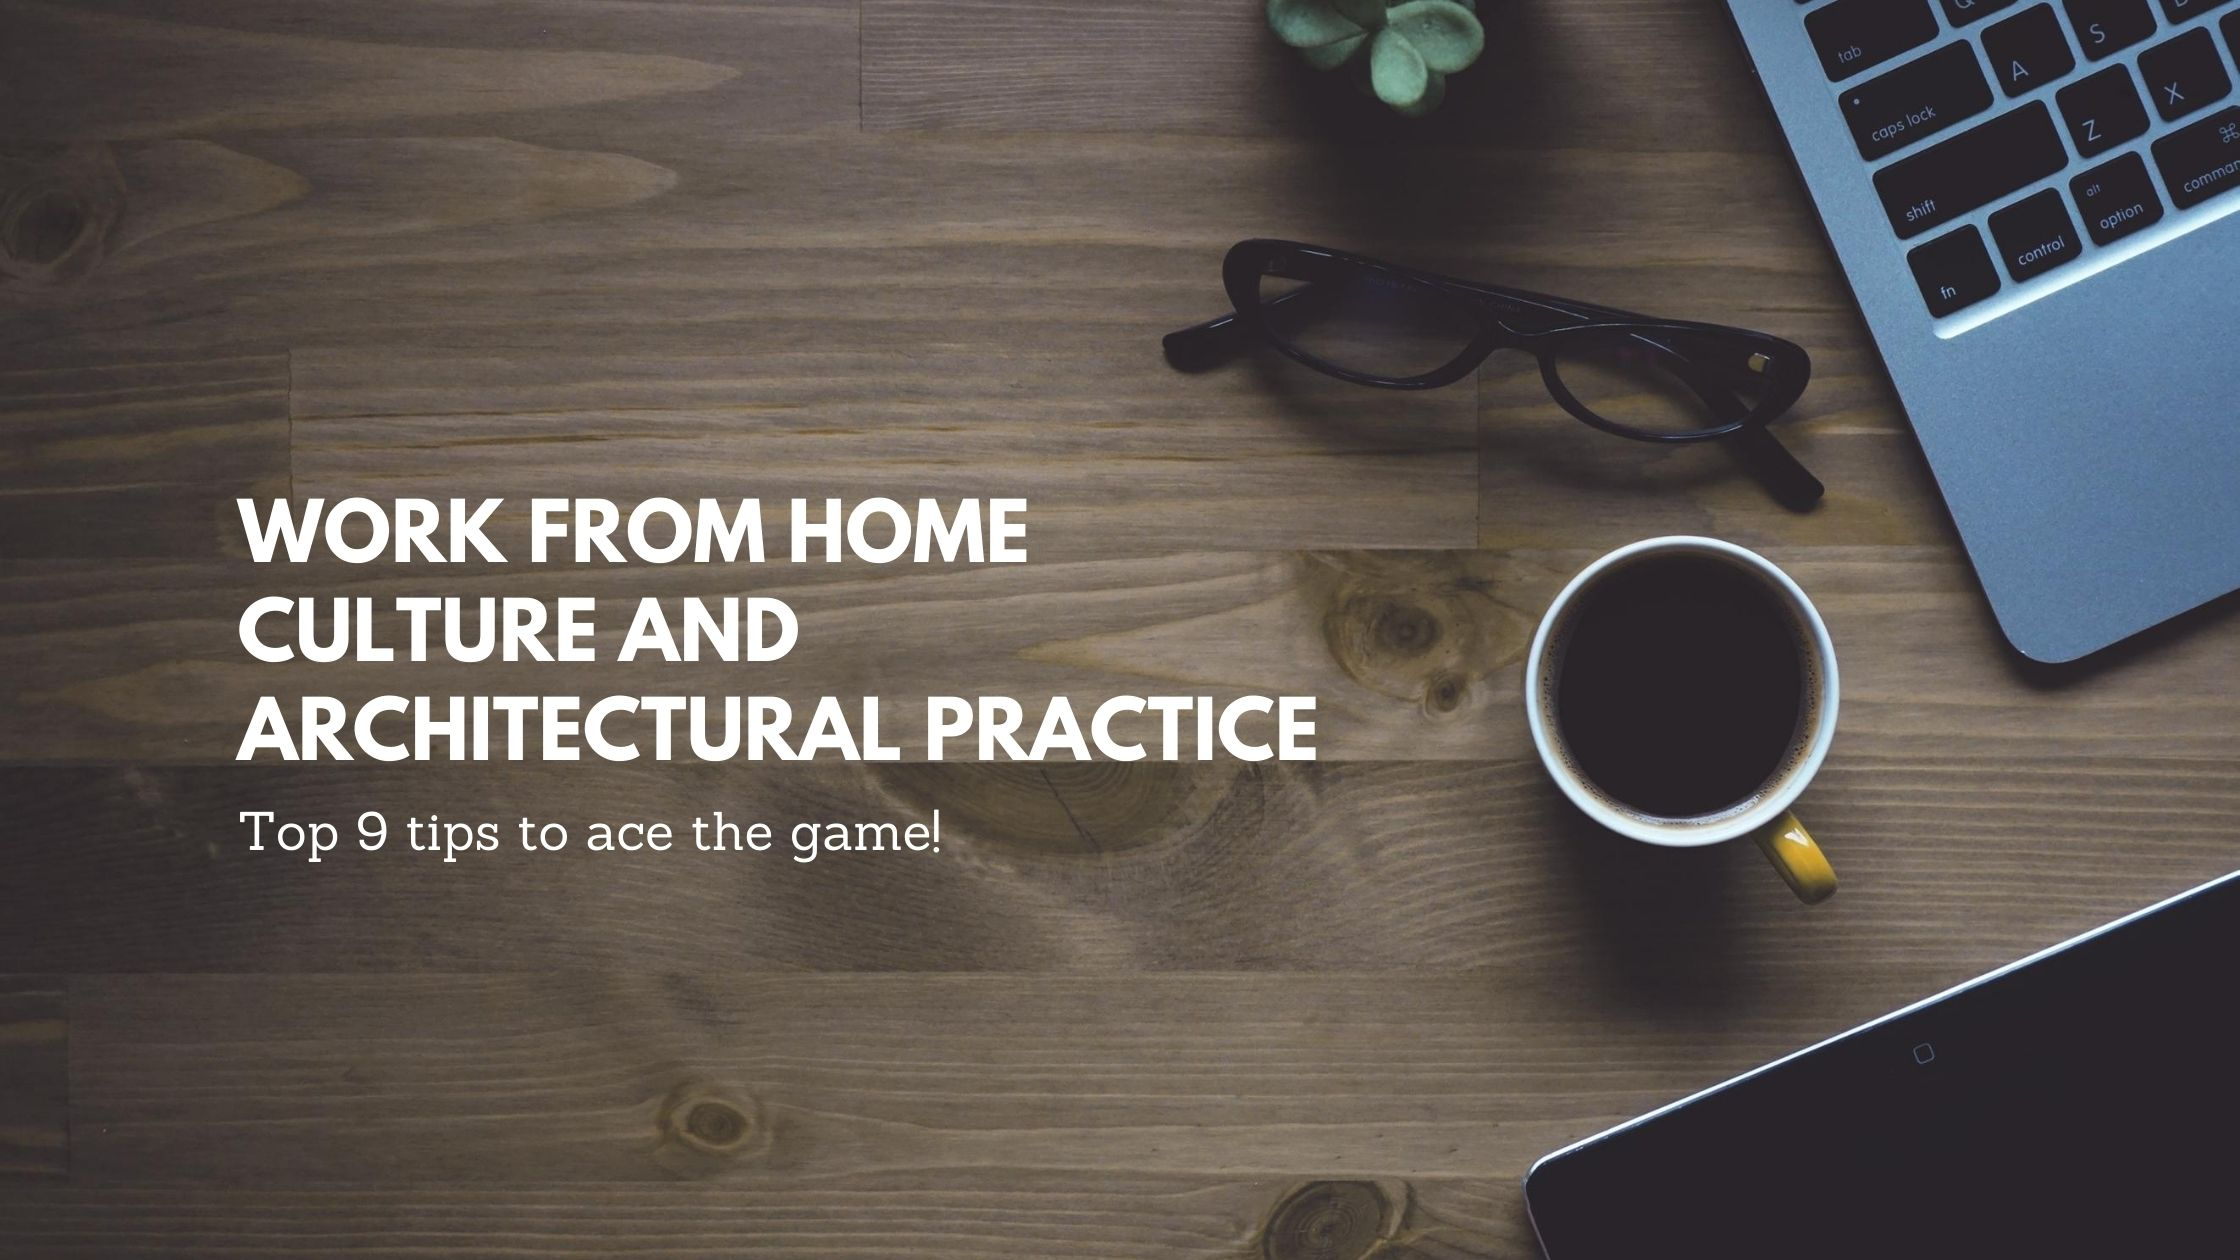 Work from home culture